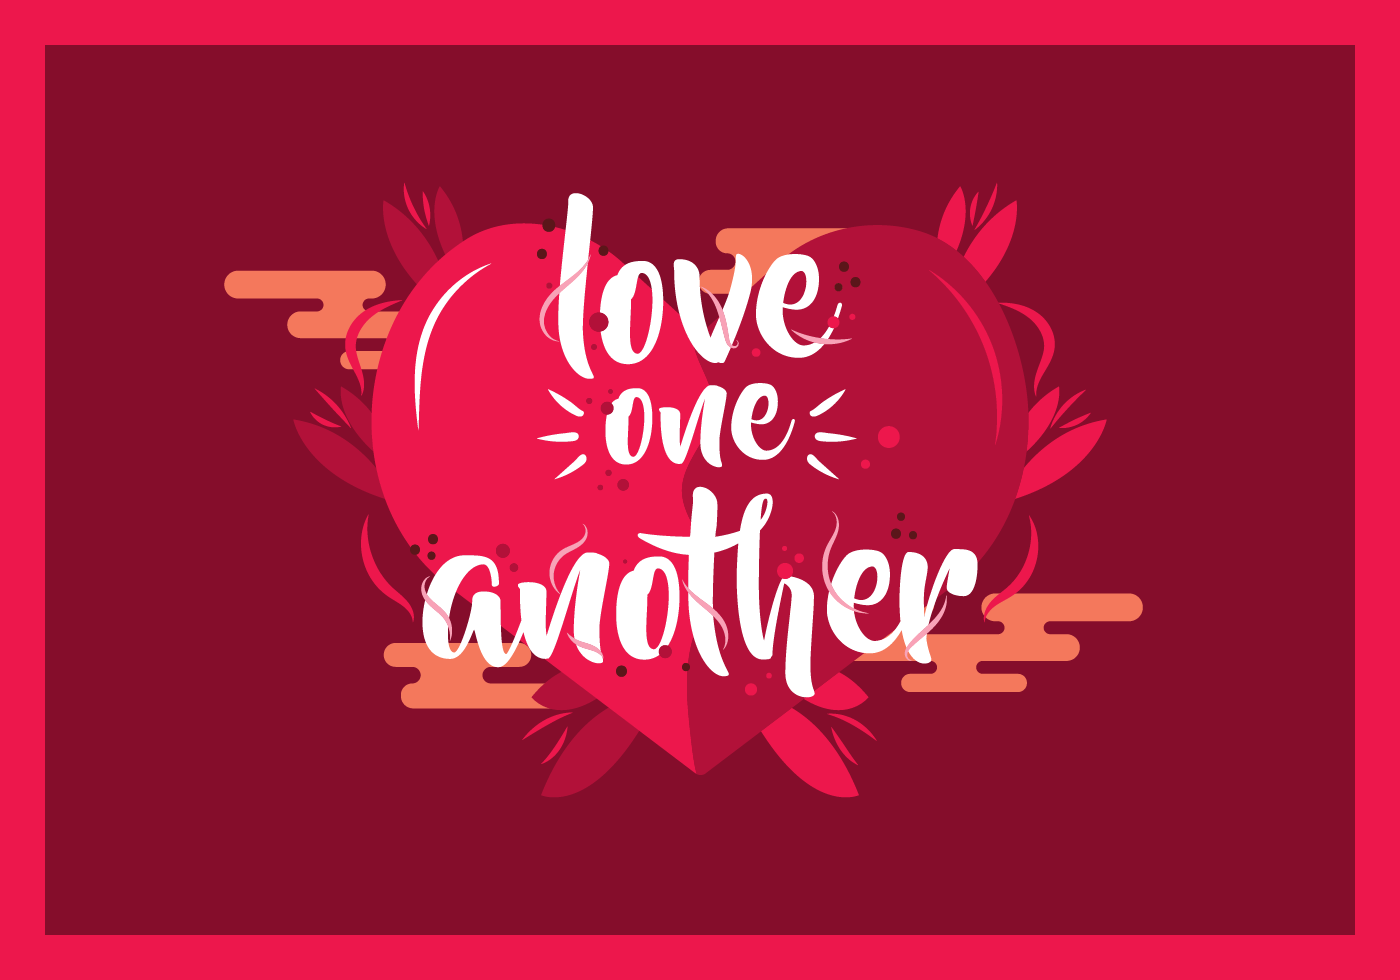 Love One Another: Love One Another Typography Vector